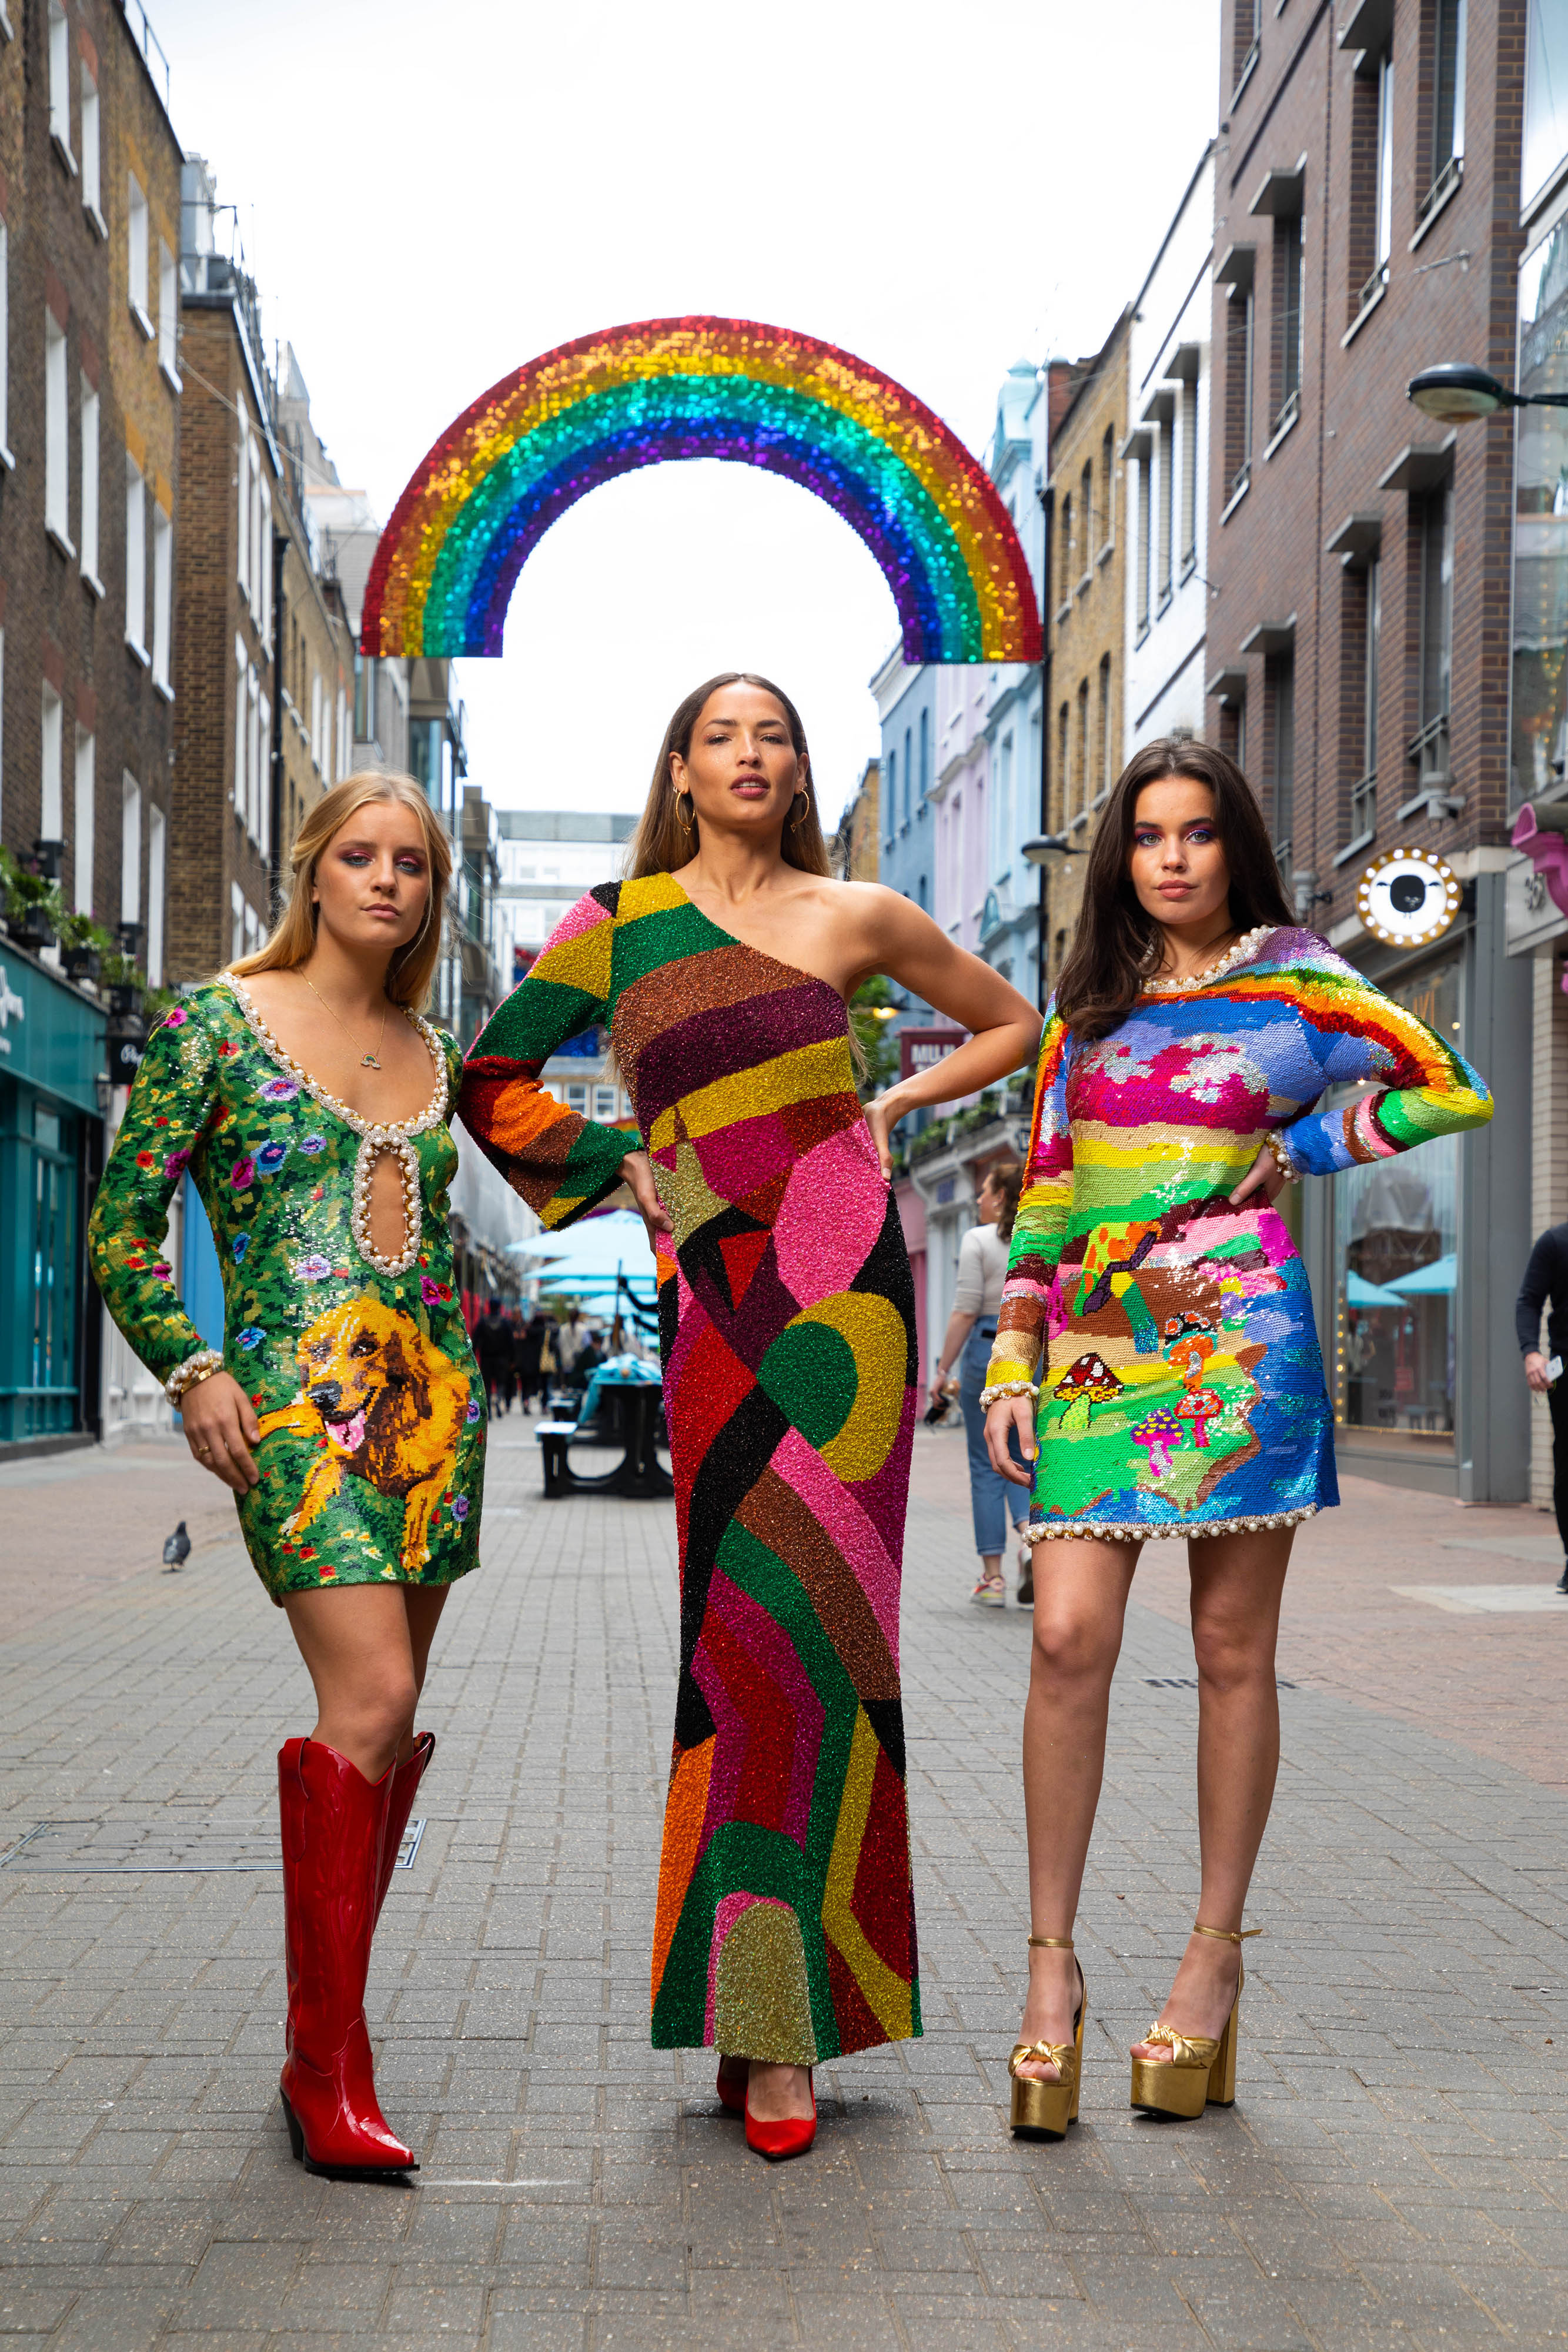 <p>EDITORIAL USE ONLY (Left to right) Krizzy Doble, Charlotte Carter-Allen and Izzy Henry at the unveiling of the brand-new rainbow installation in Carnaby, featuring two bright shimmer disk rainbows arching over Carnaby Street, London. Picture date: Wednesday May 12, 2021.</p>